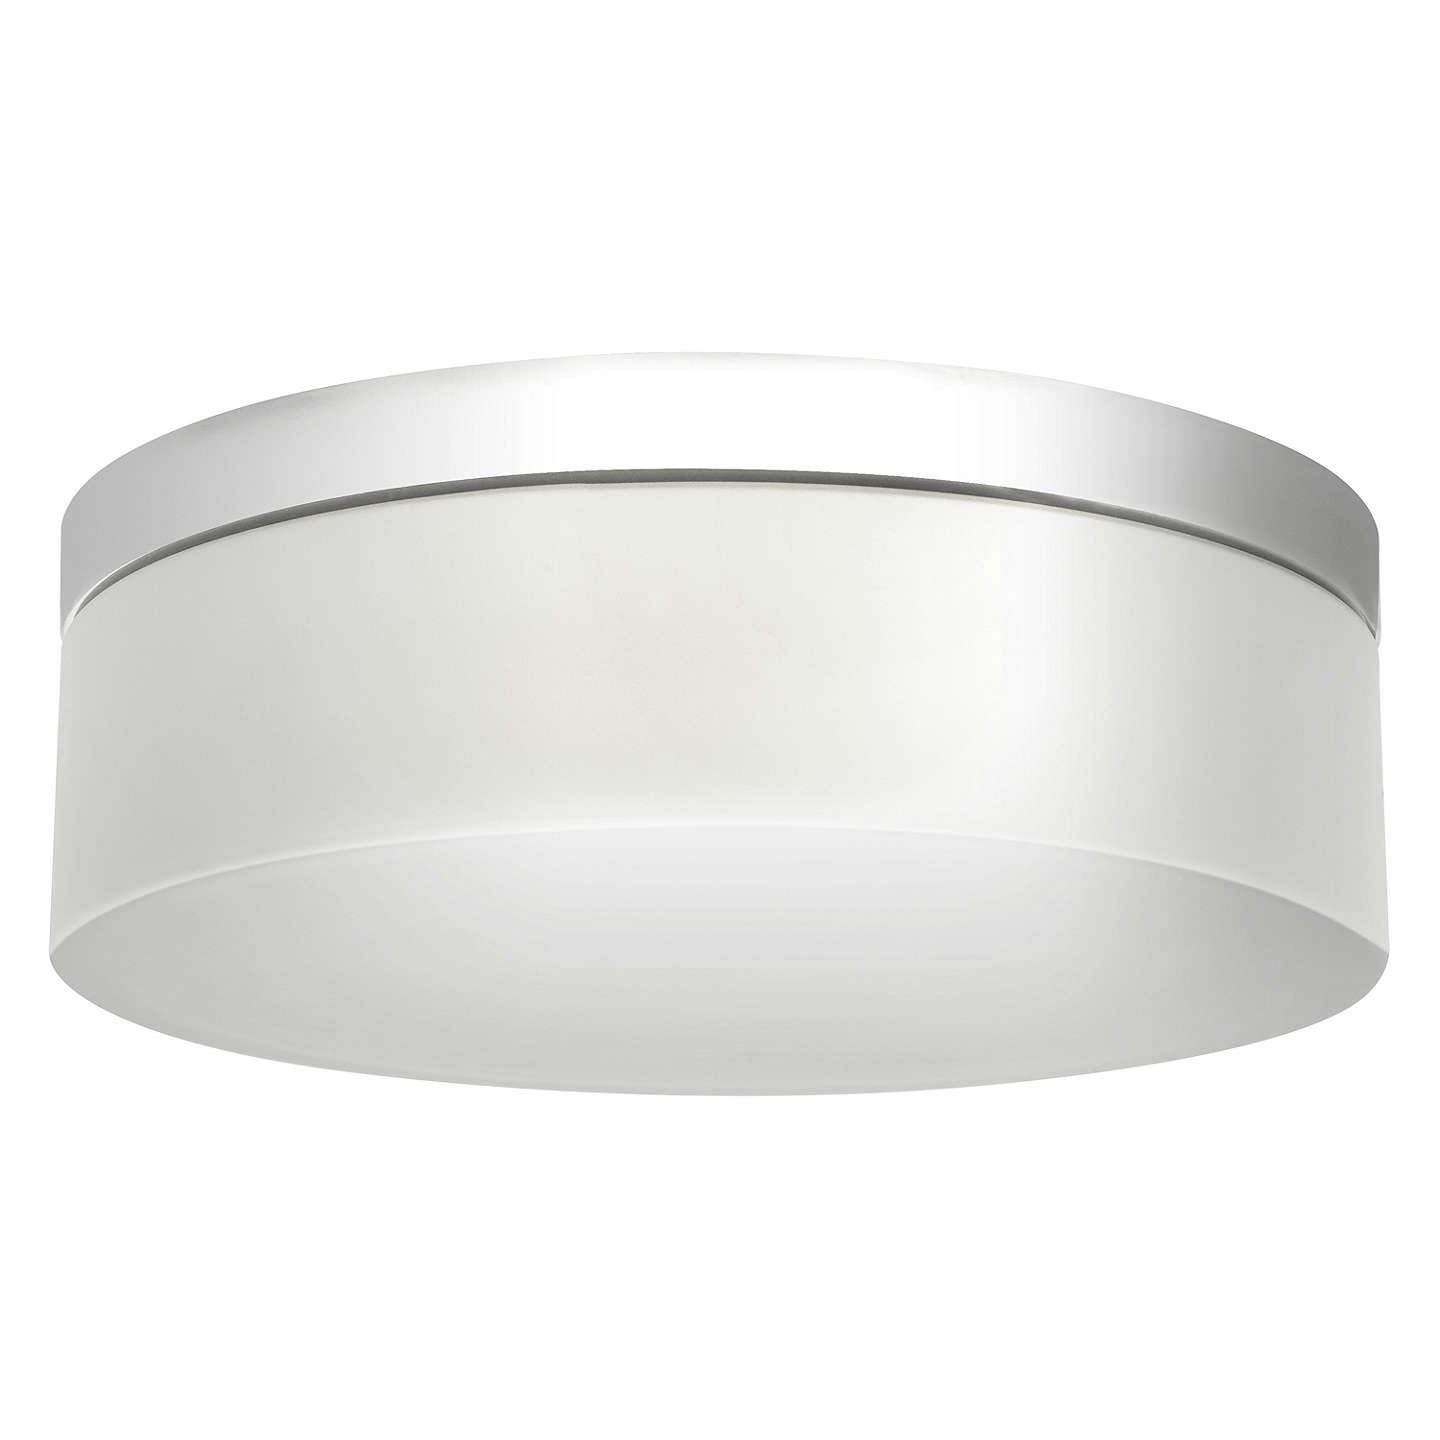 Astro Sabina Round Flush Bathroom Ceiling Light at John Lewis